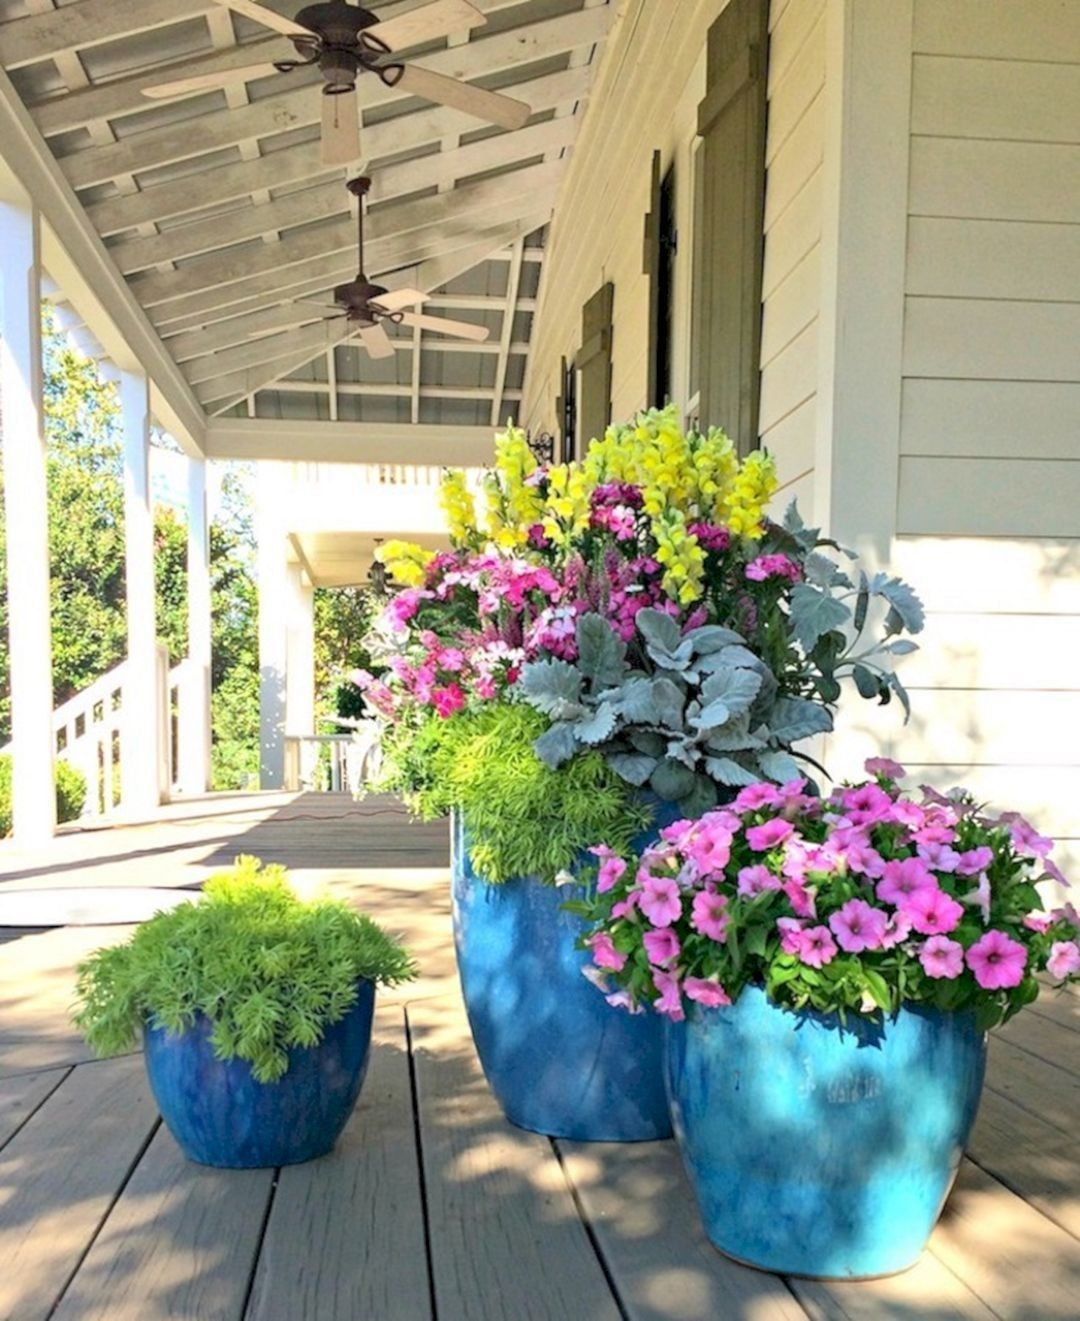 57 Amazing Beautiful Garden Ideas Inspiration And: 17+ Beautiful Planters With Beautiful Flower For Your